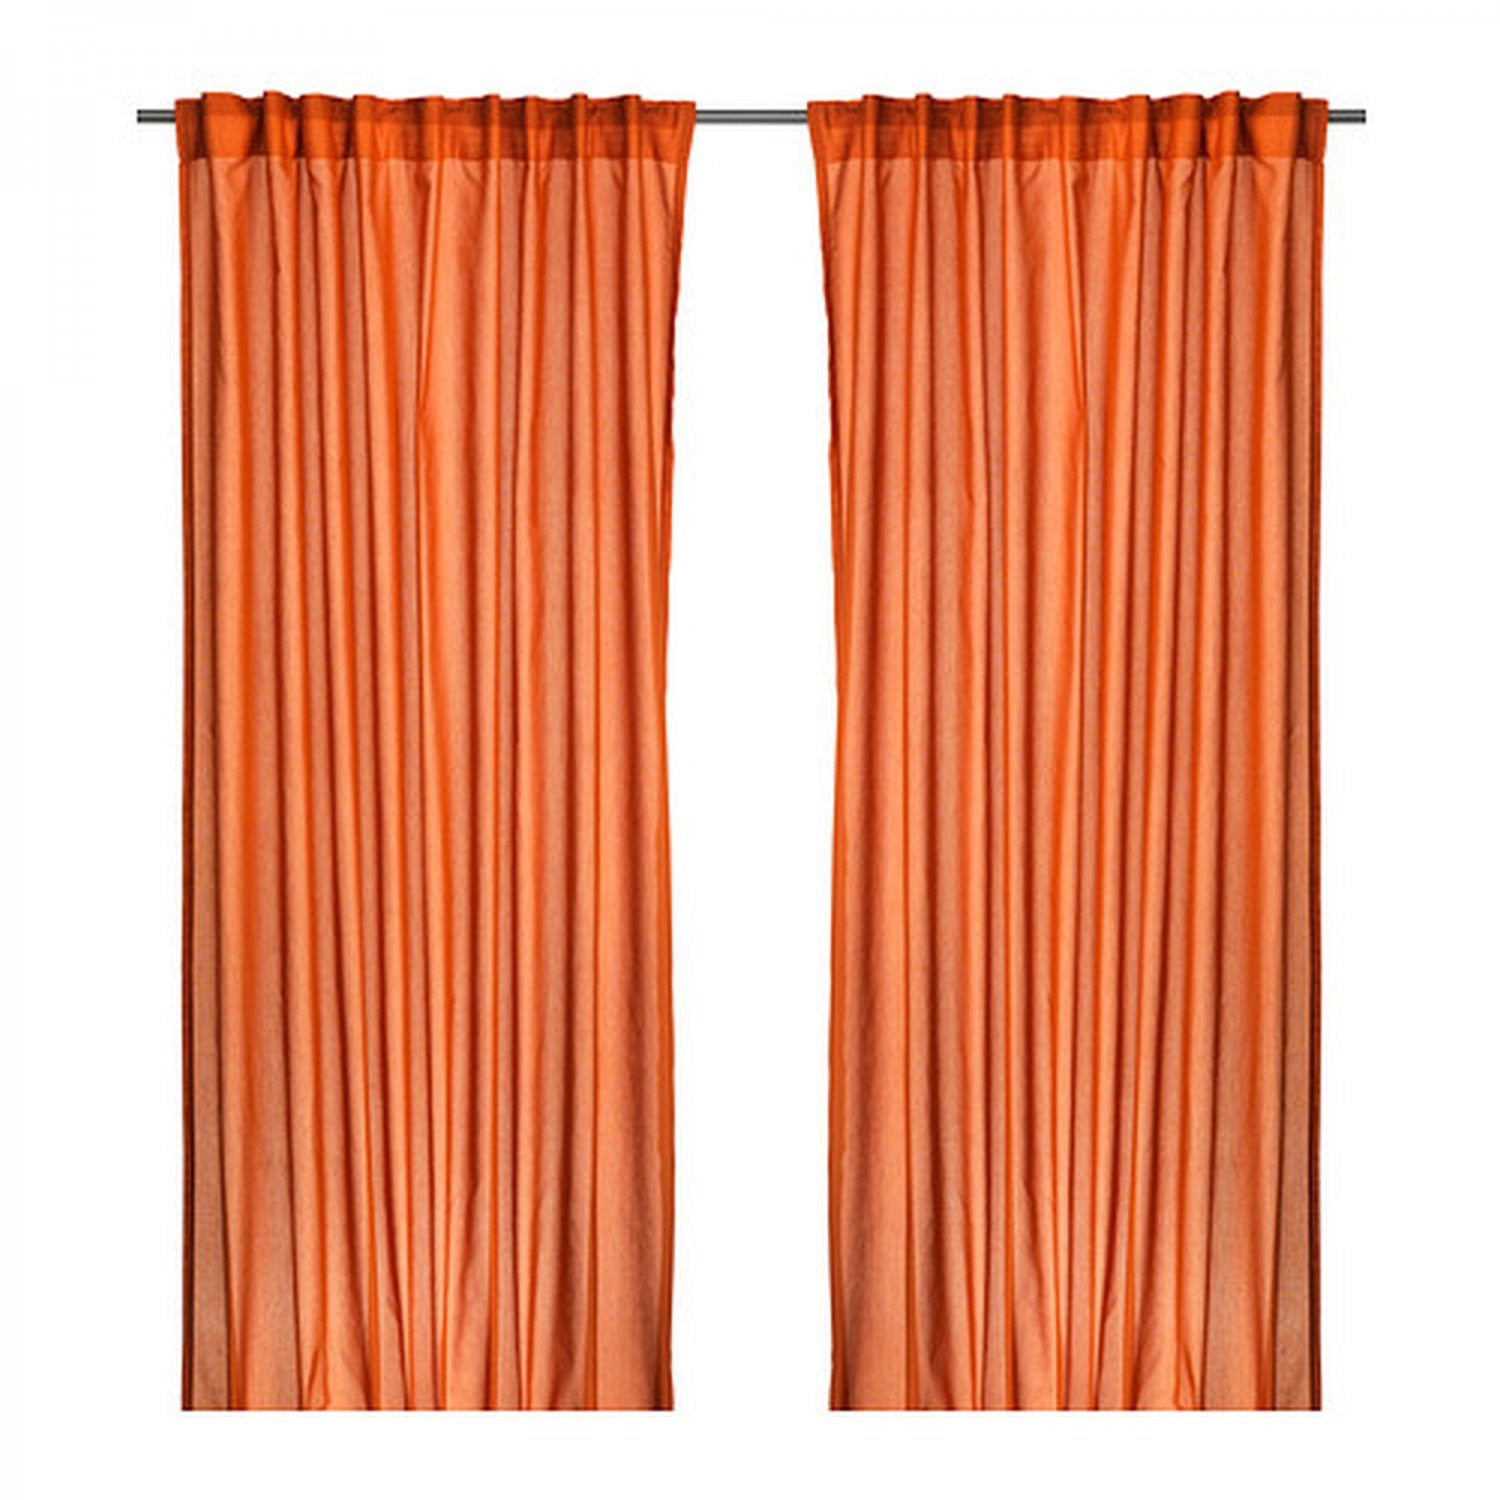 IKEA VIVAN CURTAINS Drapes DARK ORANGE 2 Panels